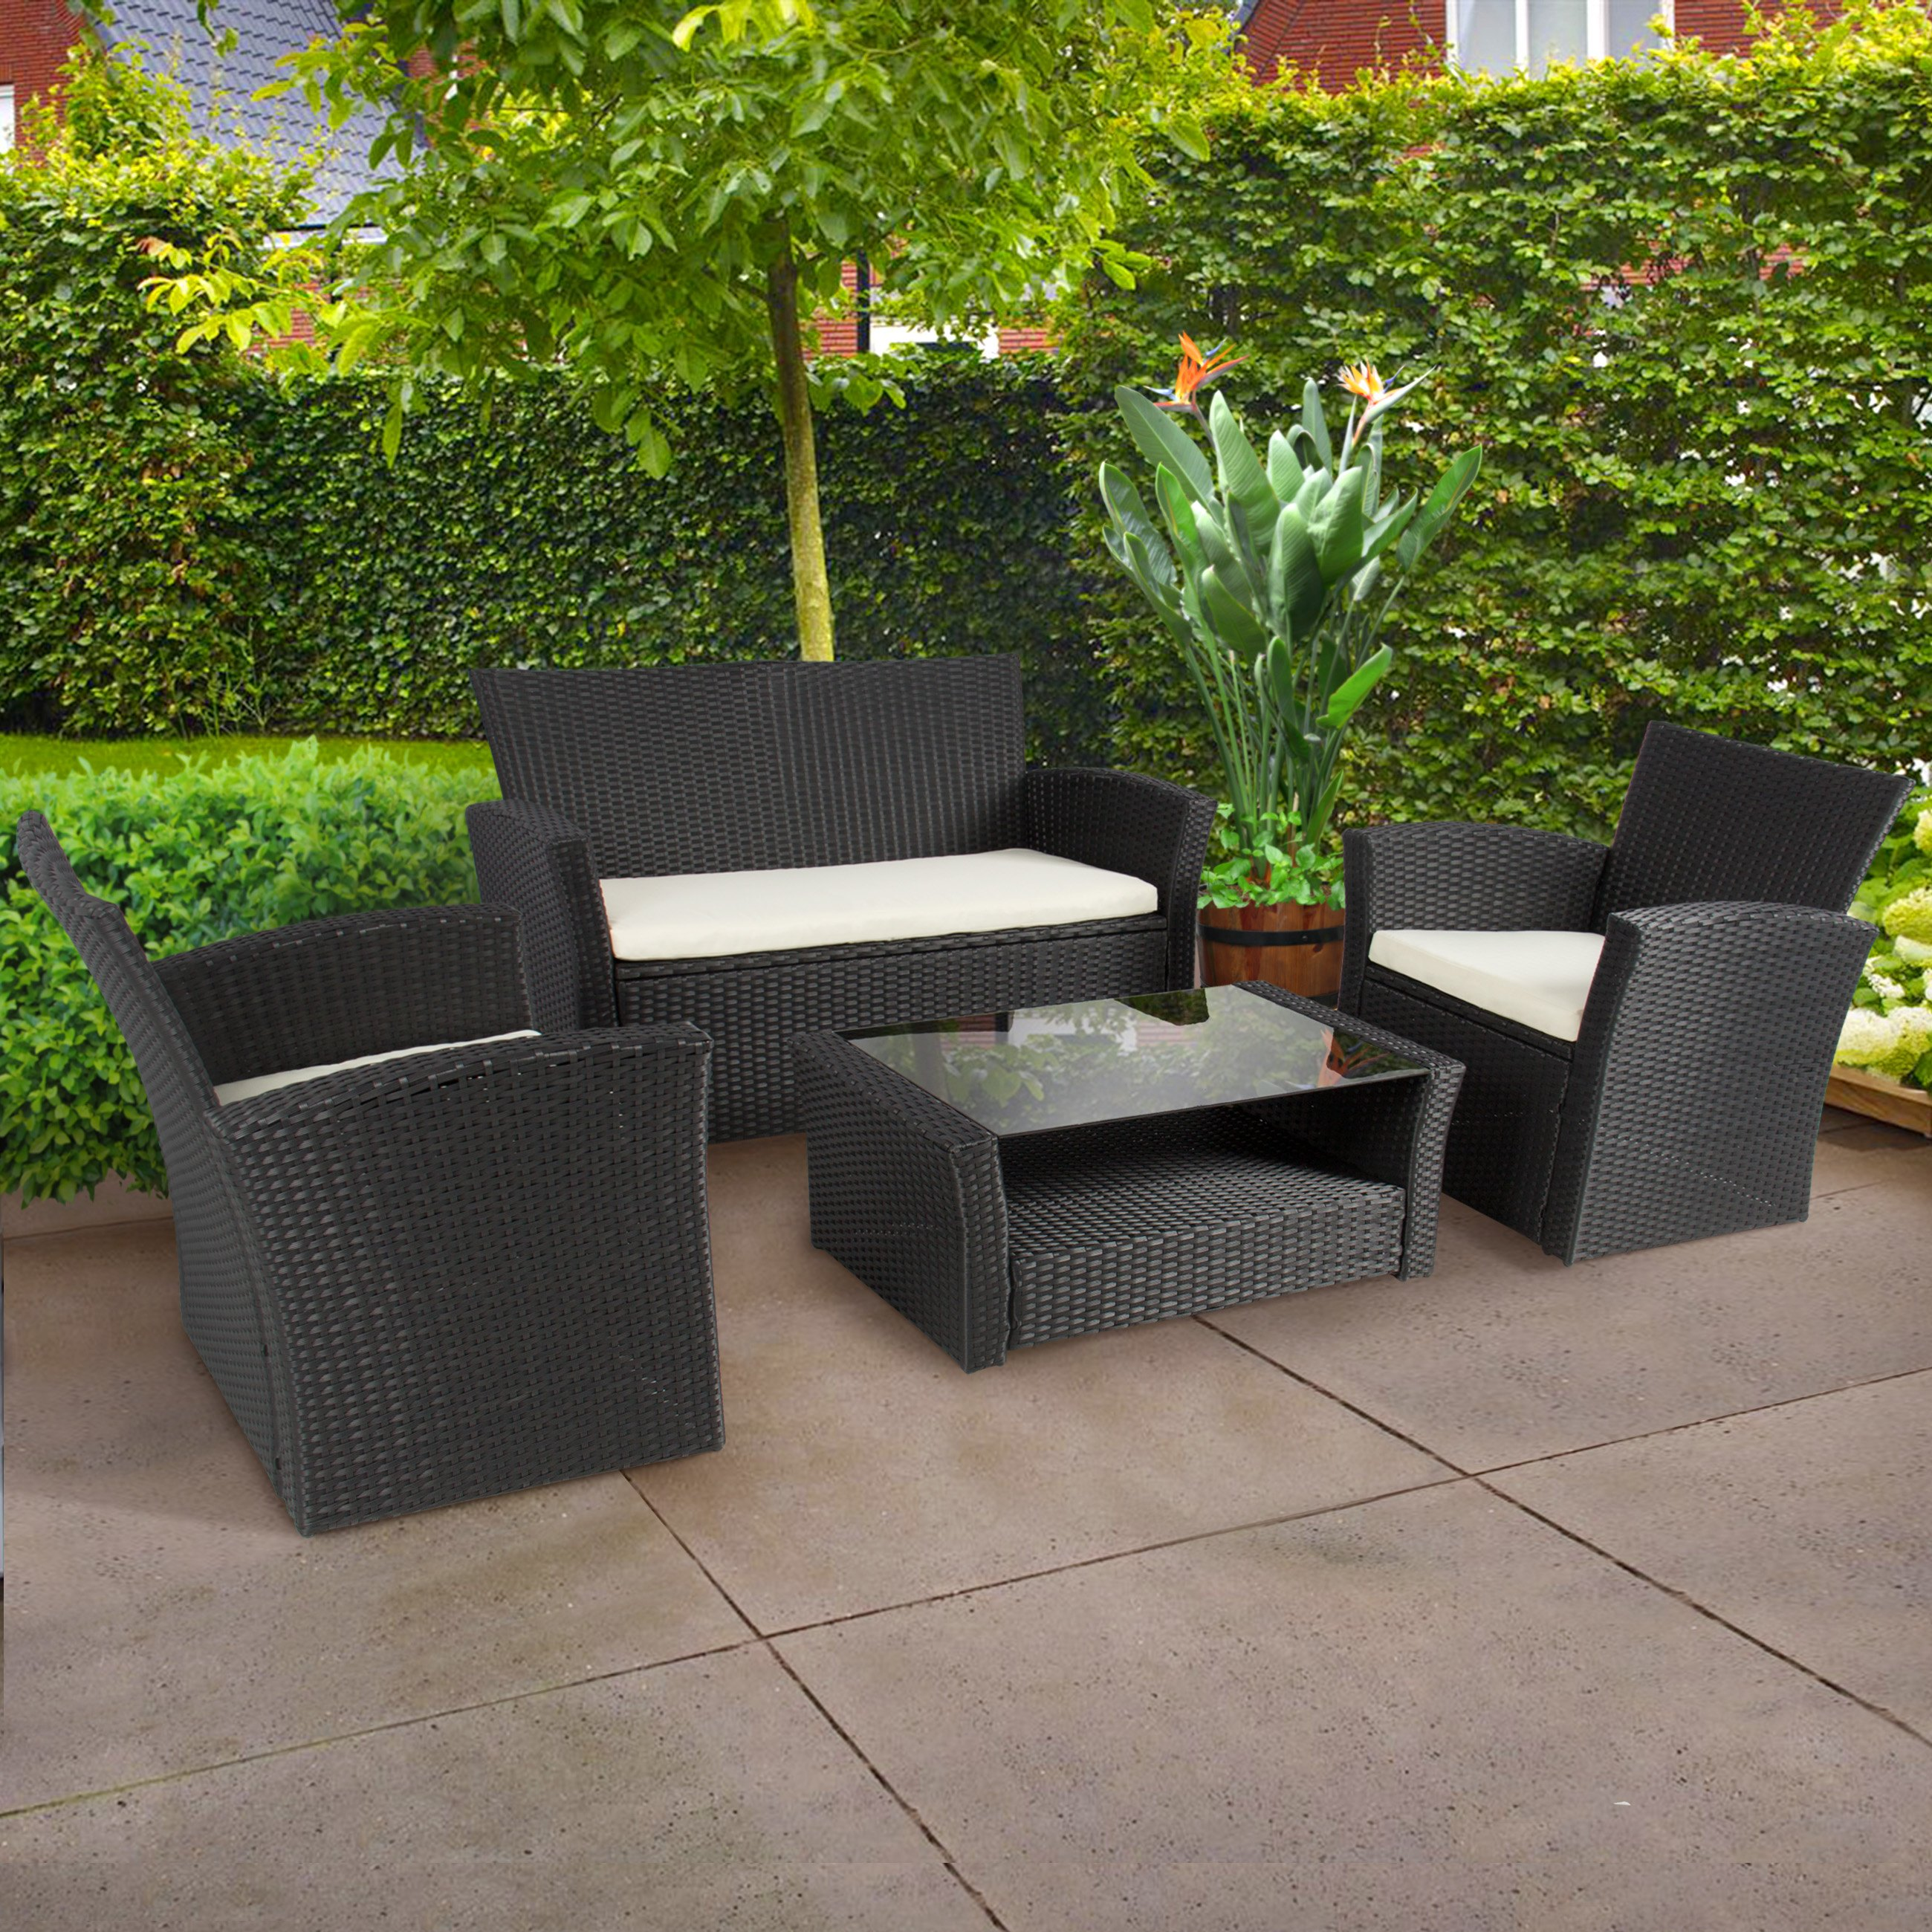 4pc Outdoor Patio Garden Furniture Wicker Rattan Sofa Set Black 0